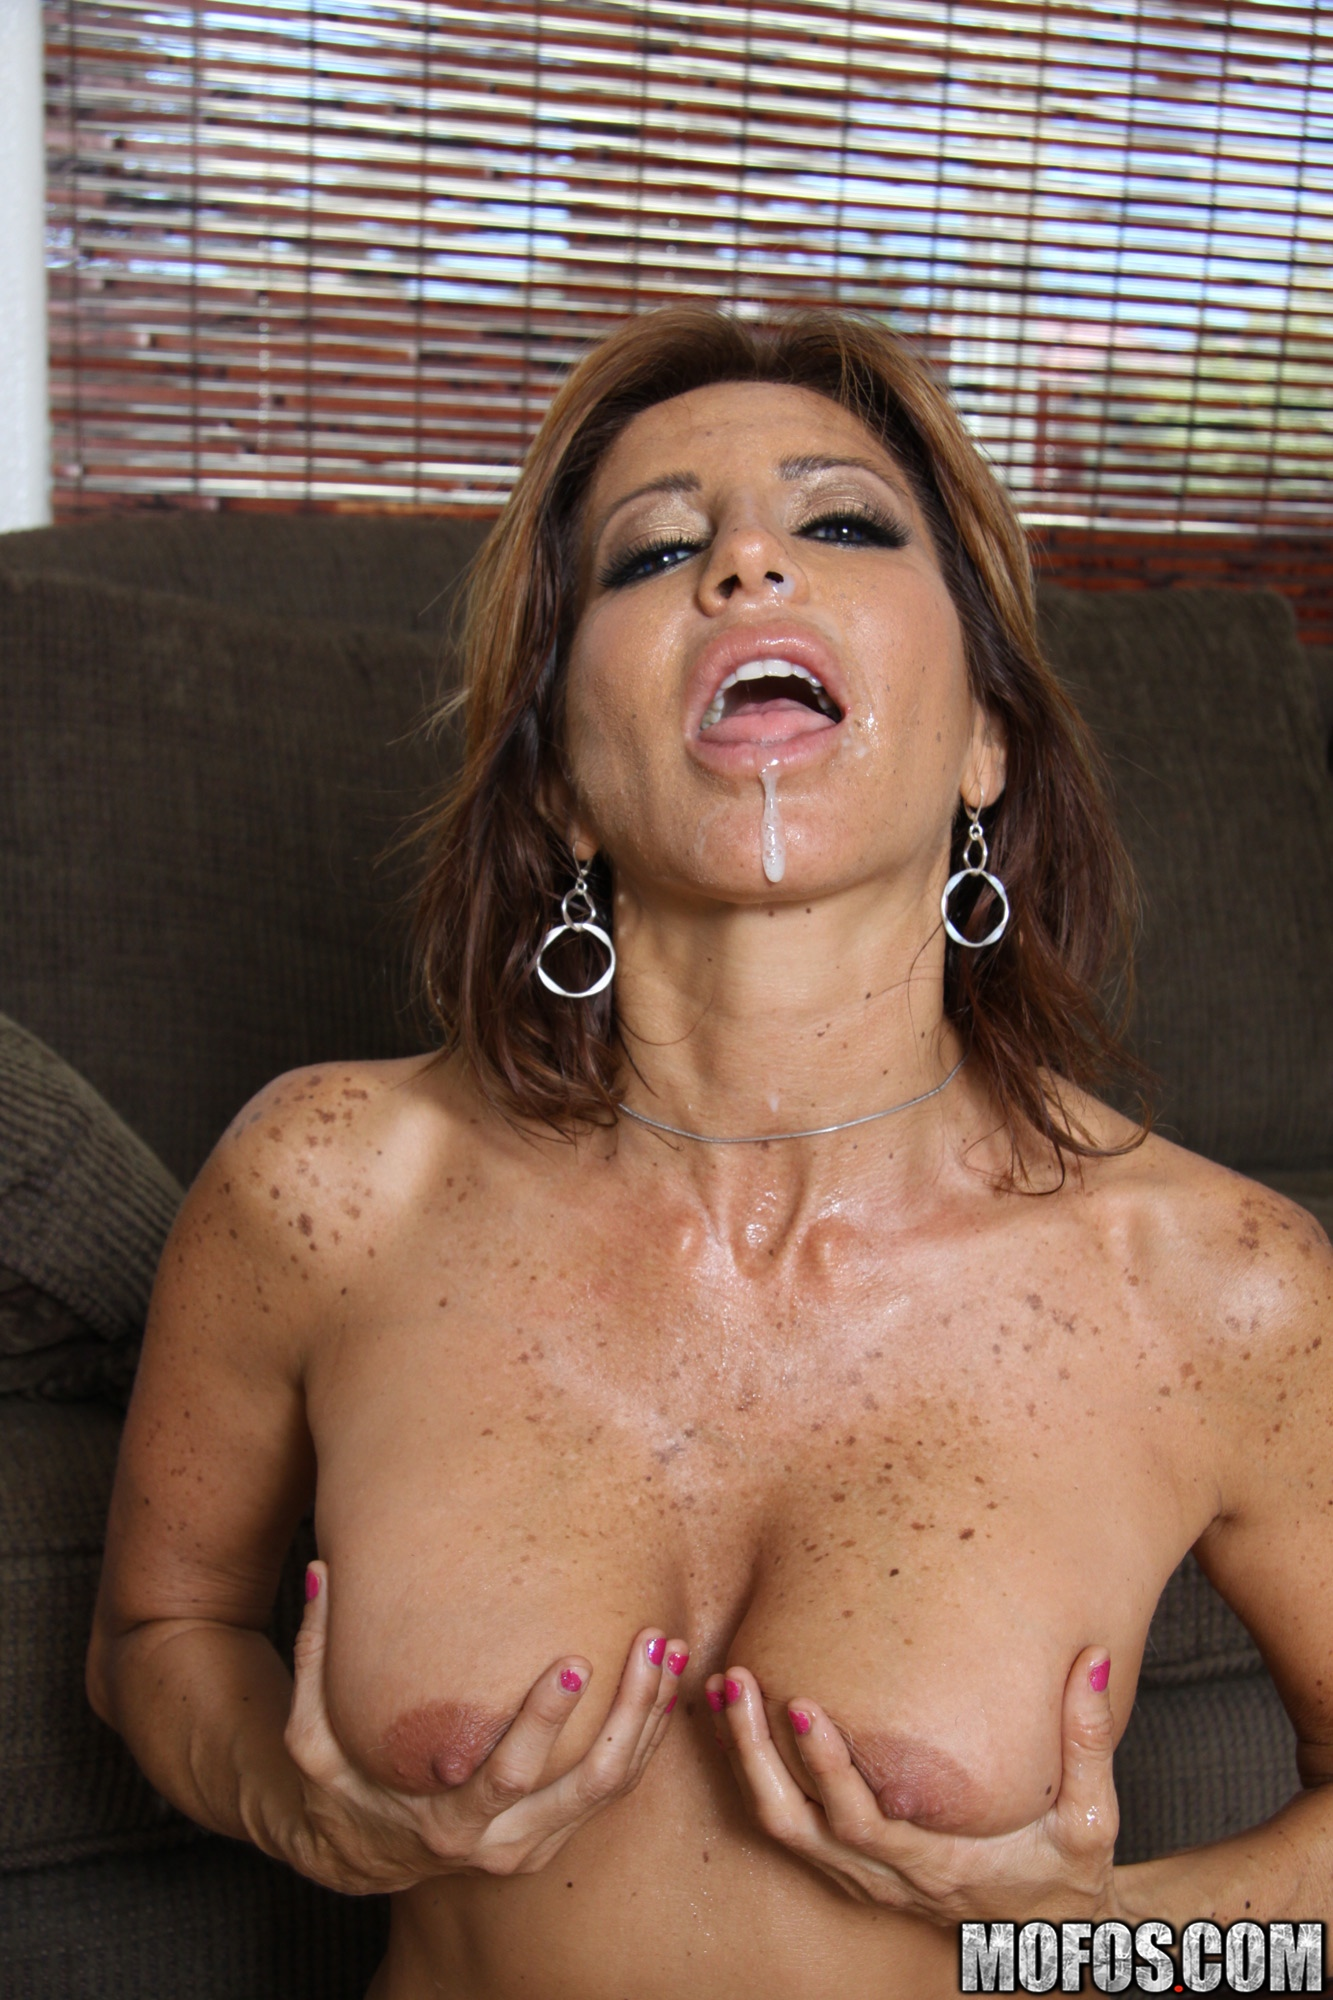 Tara holiday fucked hard